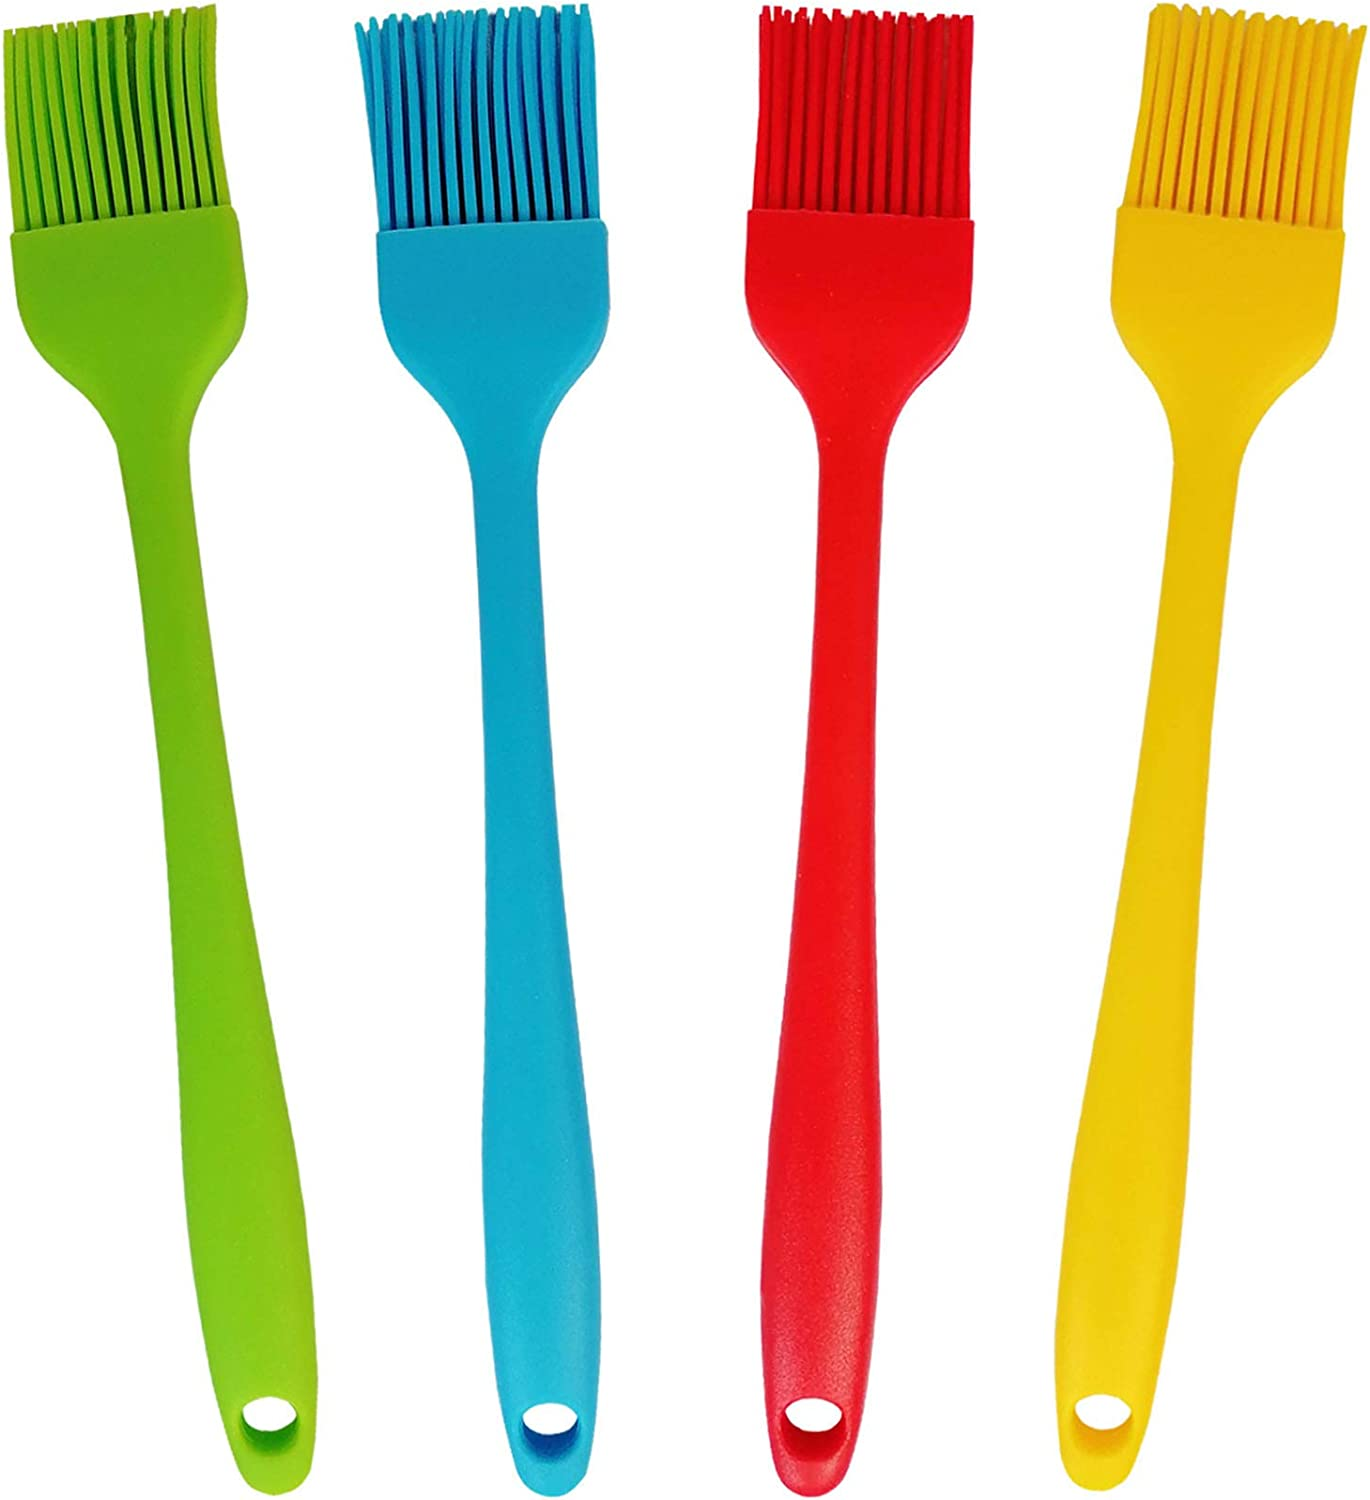 4 Fixed price for sale Pcs 8.5 Inch 1 year warranty Silicone Basting Brush and Pastry